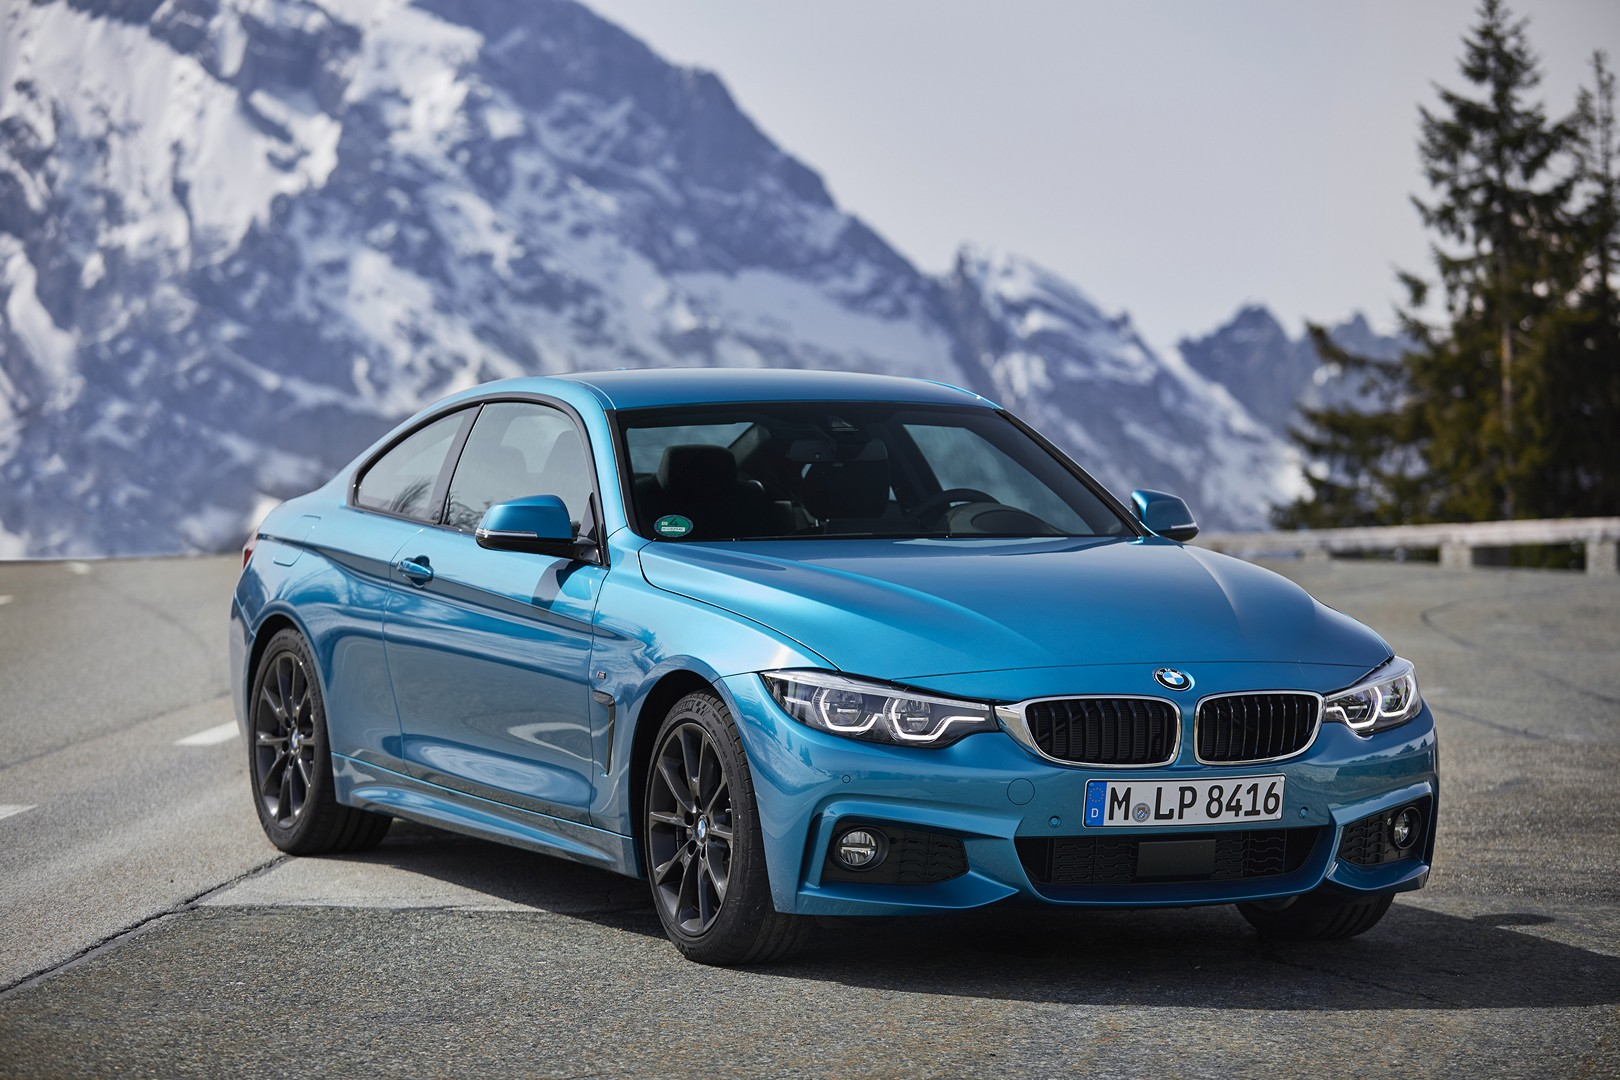 Bmw 428i Convertible 2017 >> 2018 BMW 440i M Sport Coupe Gets New Launch Photos and Videos - autoevolution